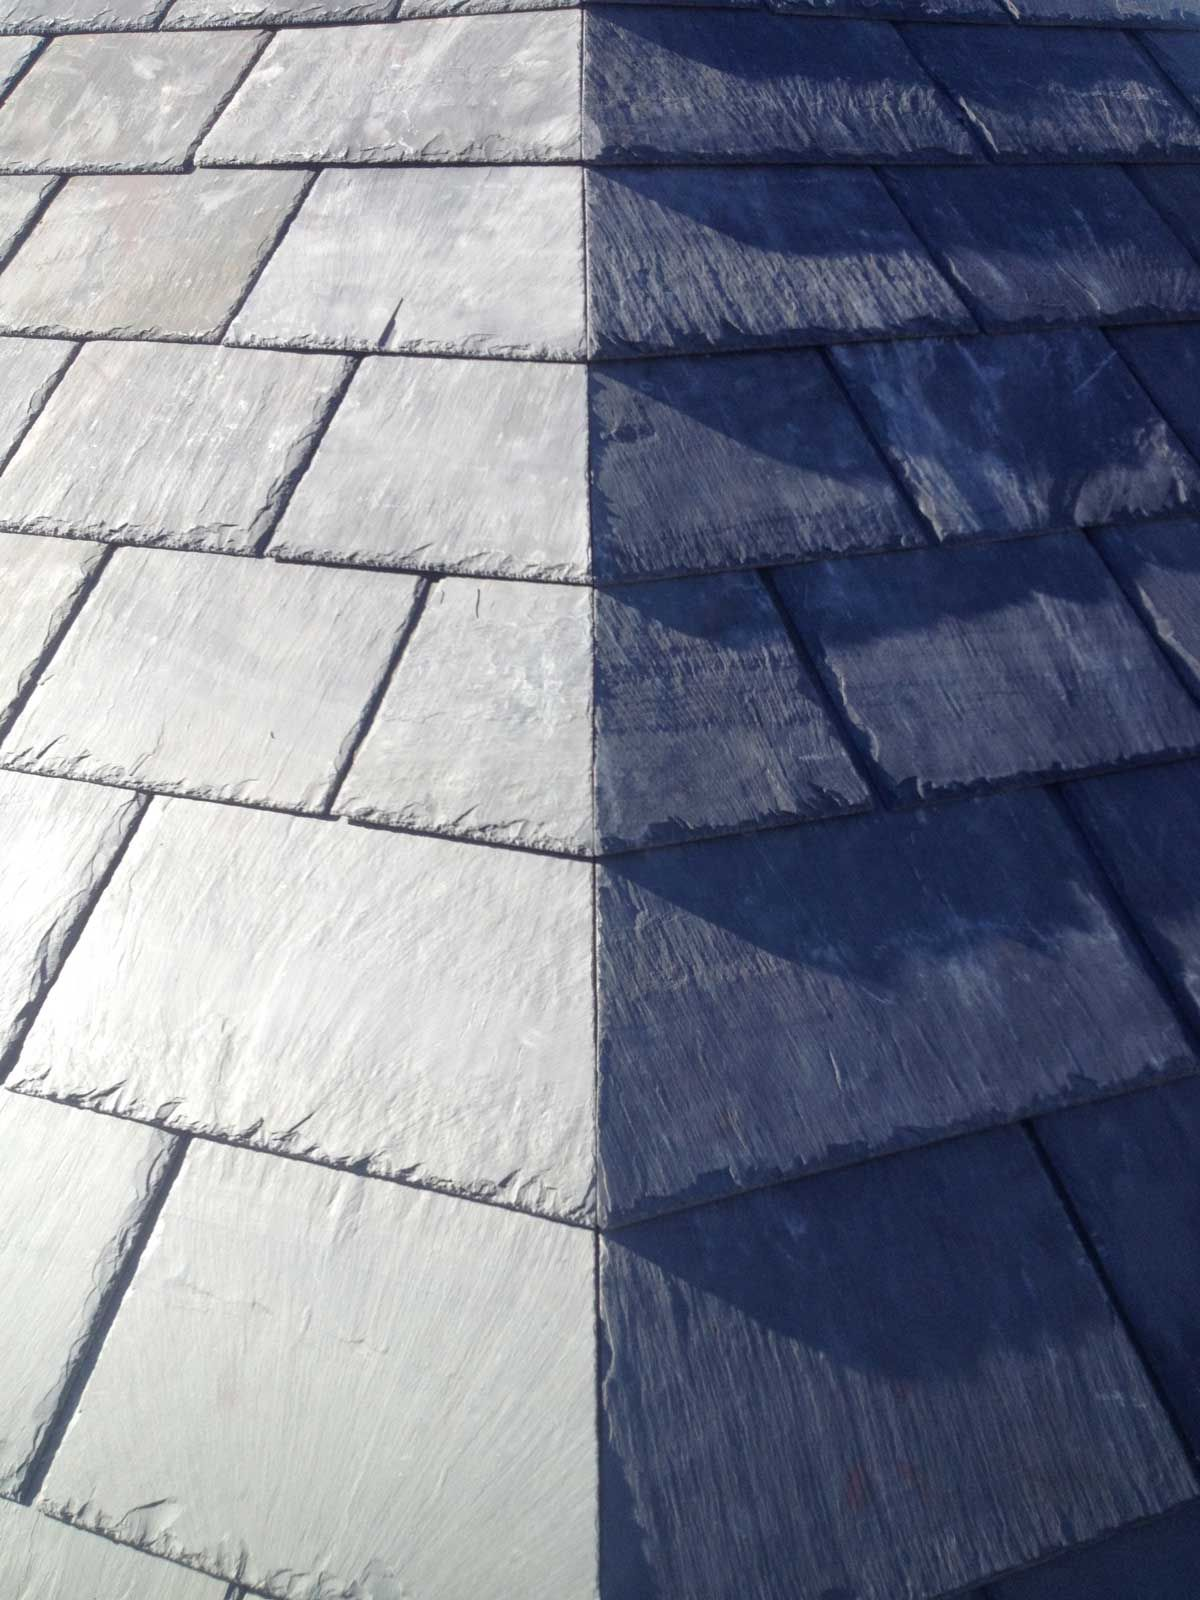 Get the best slate roof tiles in sydney slate roofing company get the best slate roof tiles in sydney dailygadgetfo Image collections